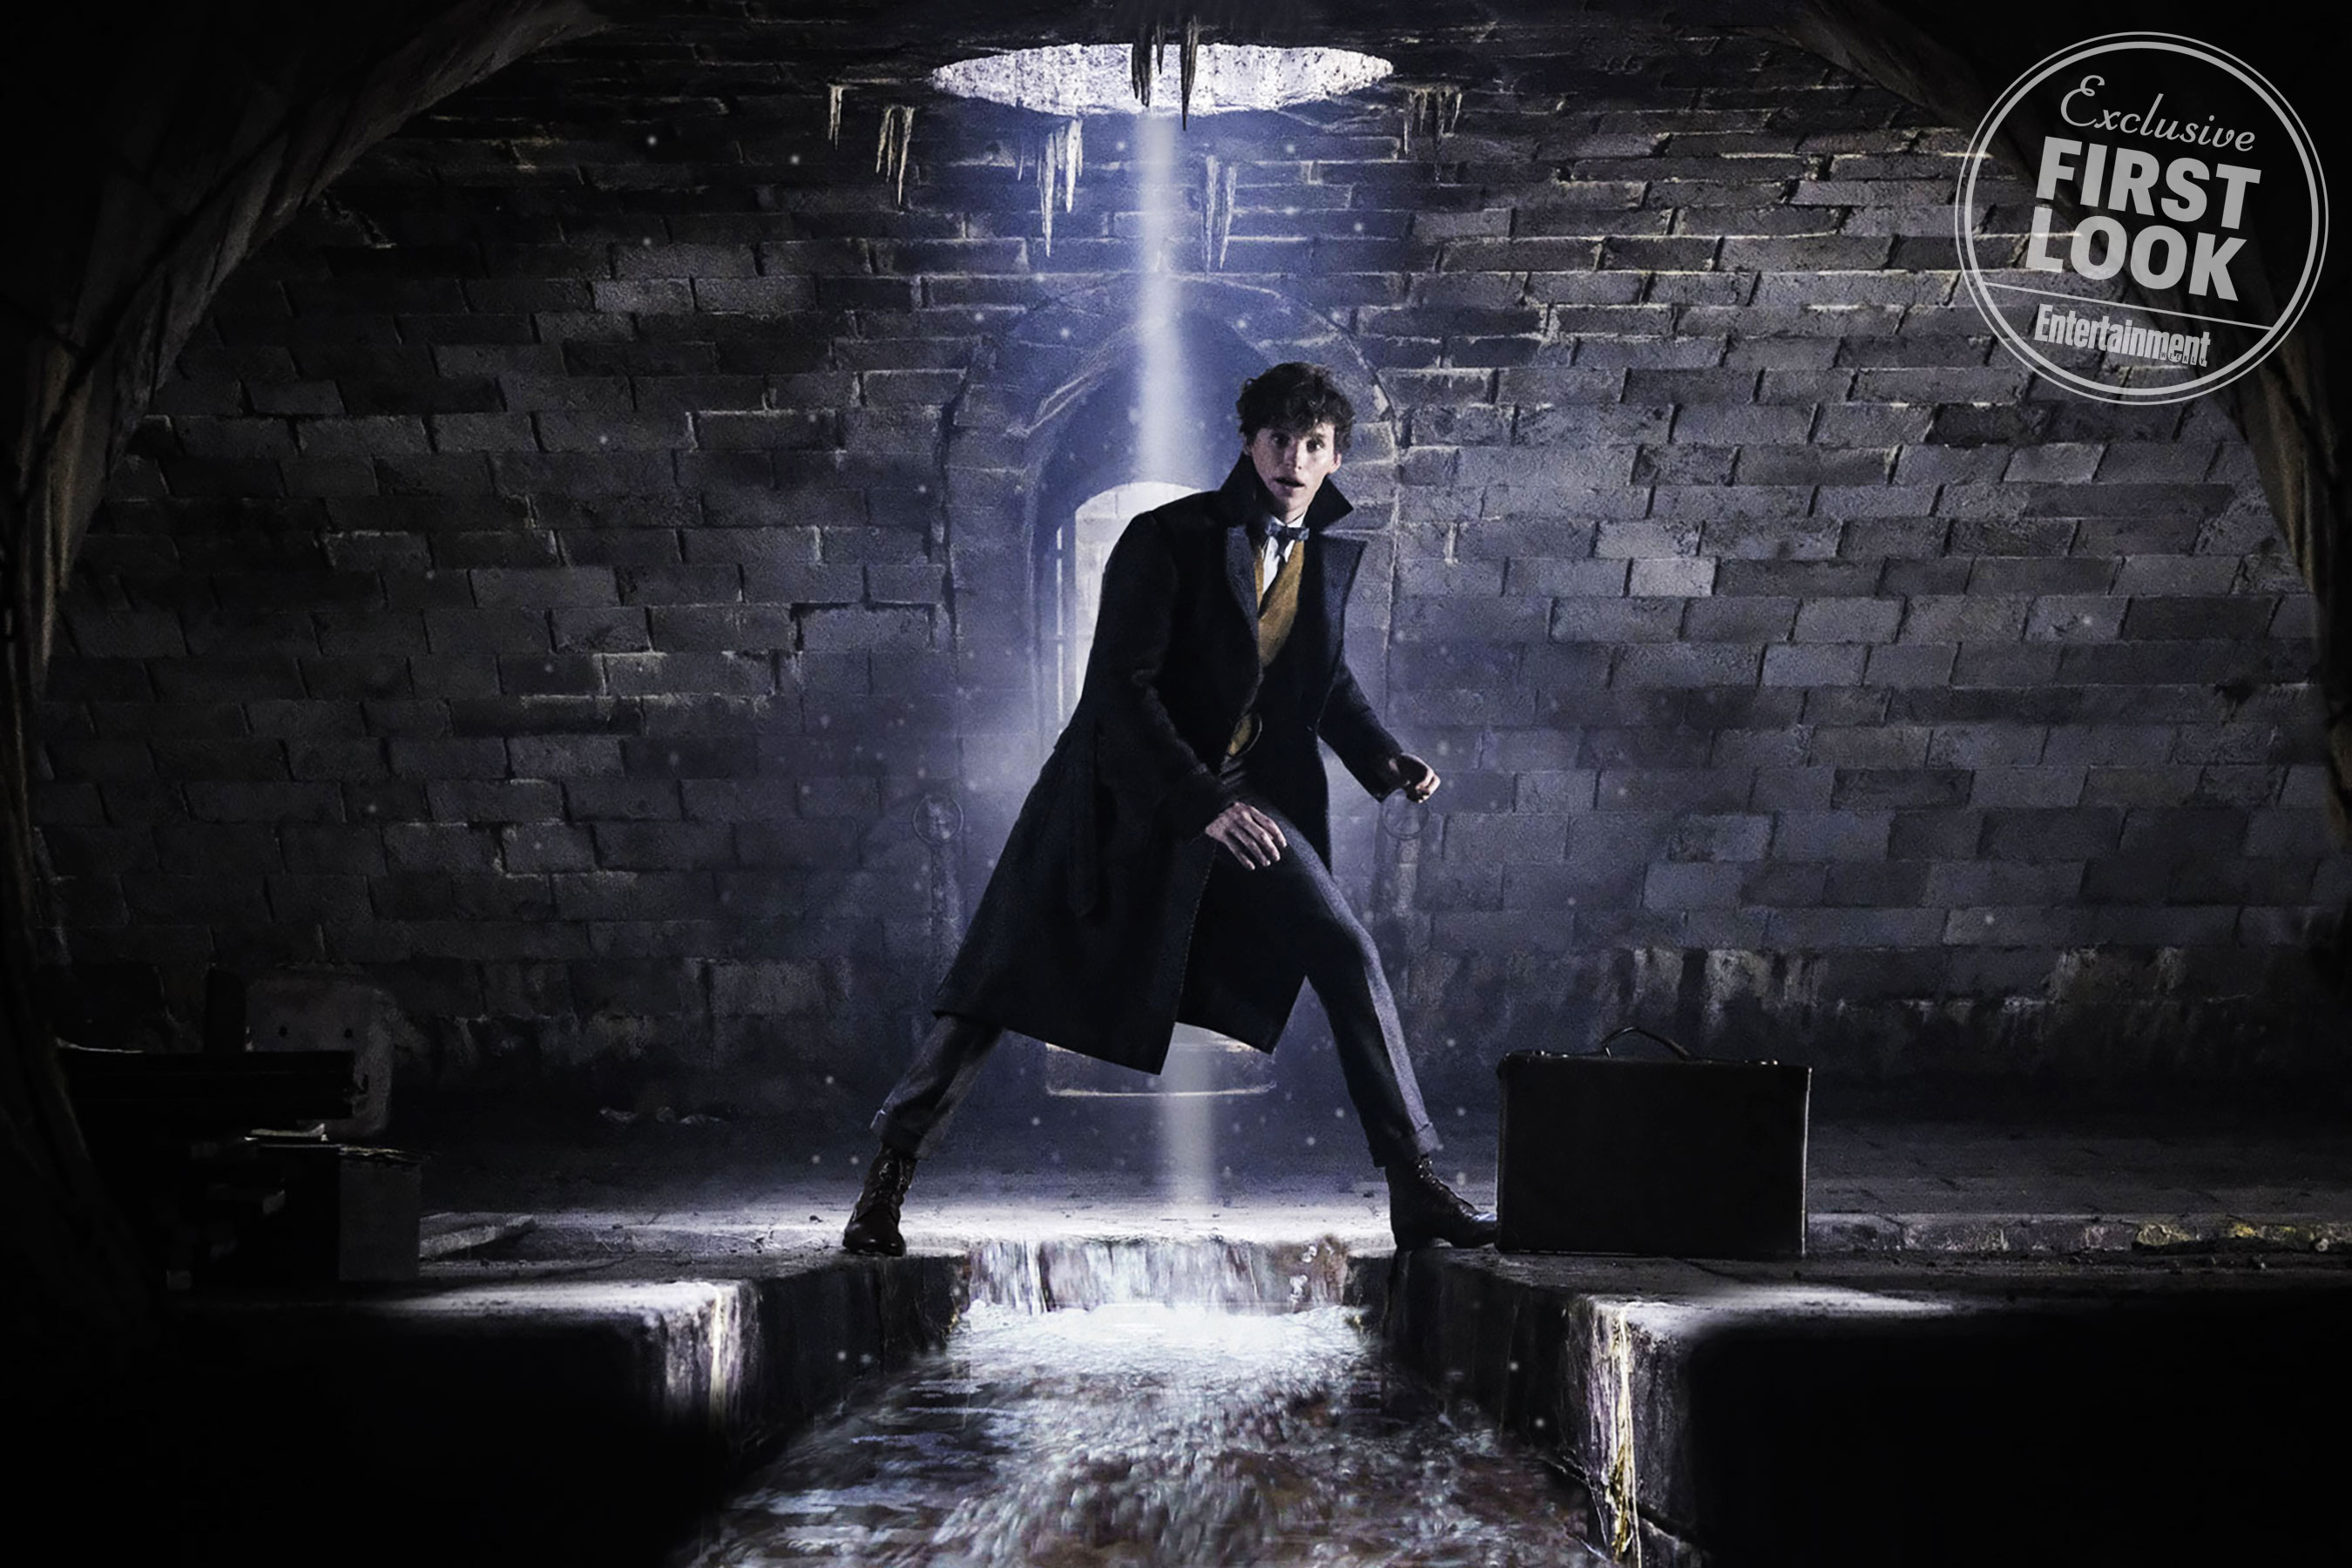 New Fantastic Beasts: The Crimes of Grindelwald Images